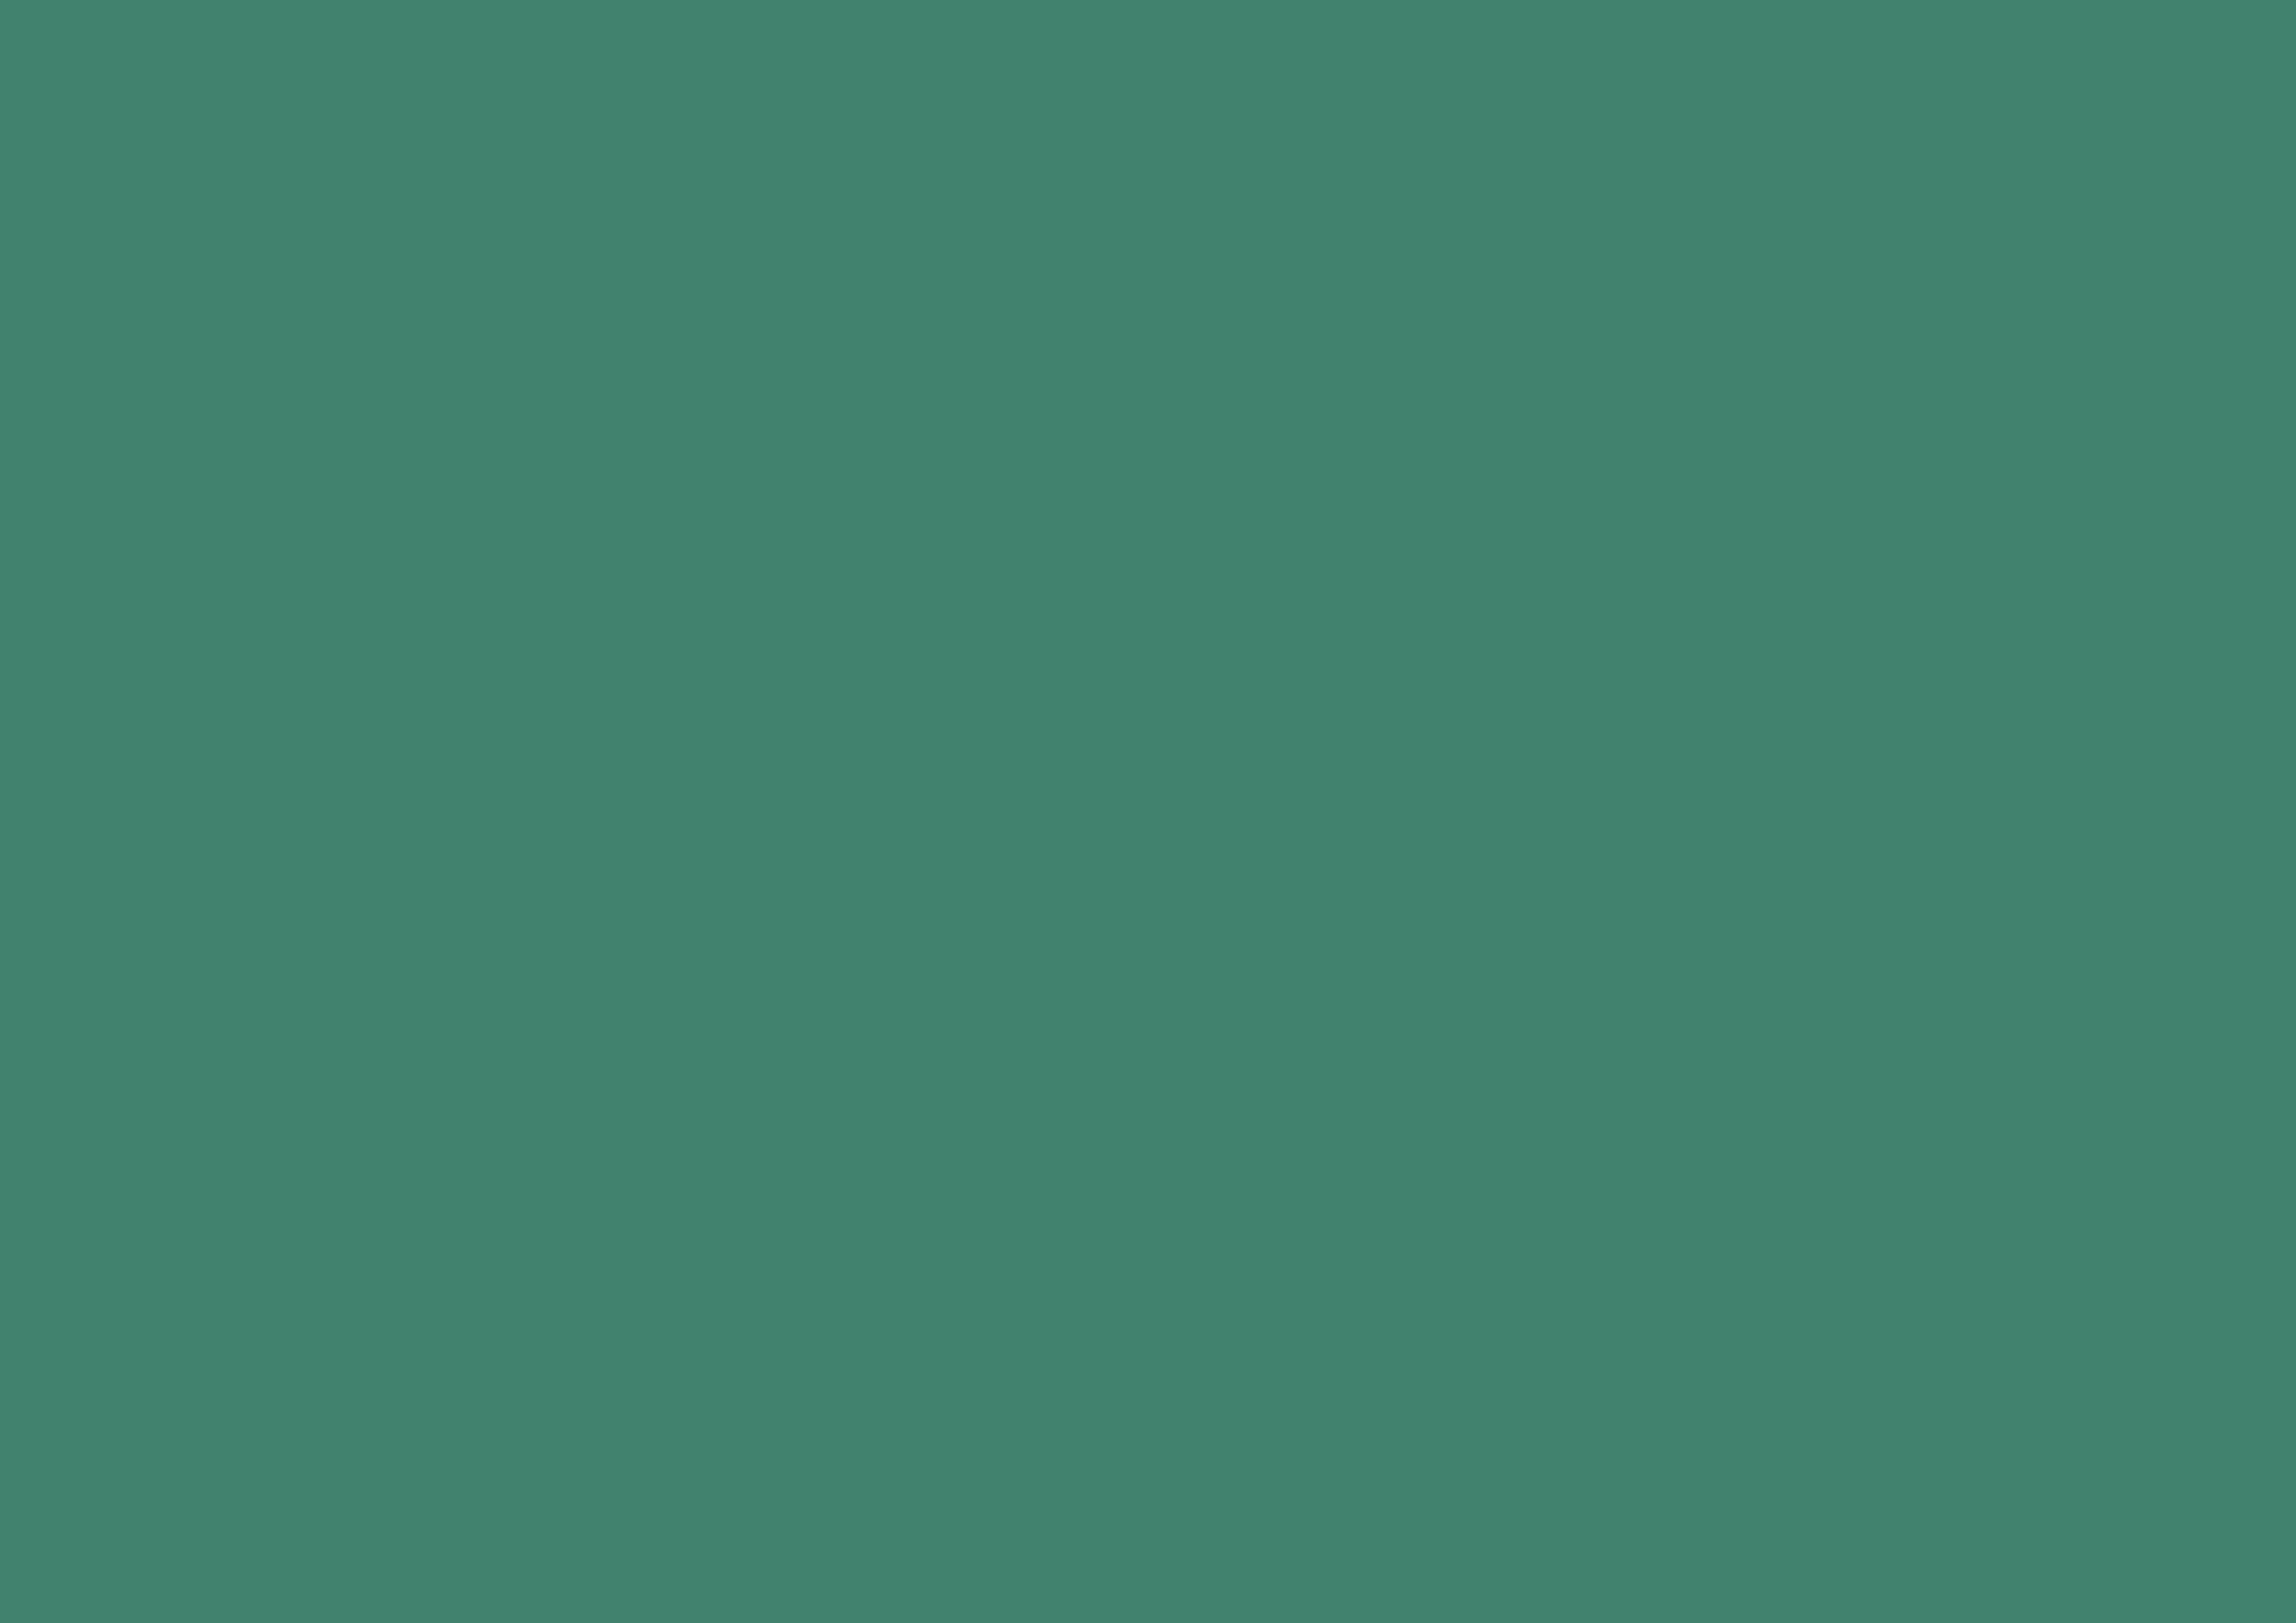 3508x2480 Viridian Solid Color Background